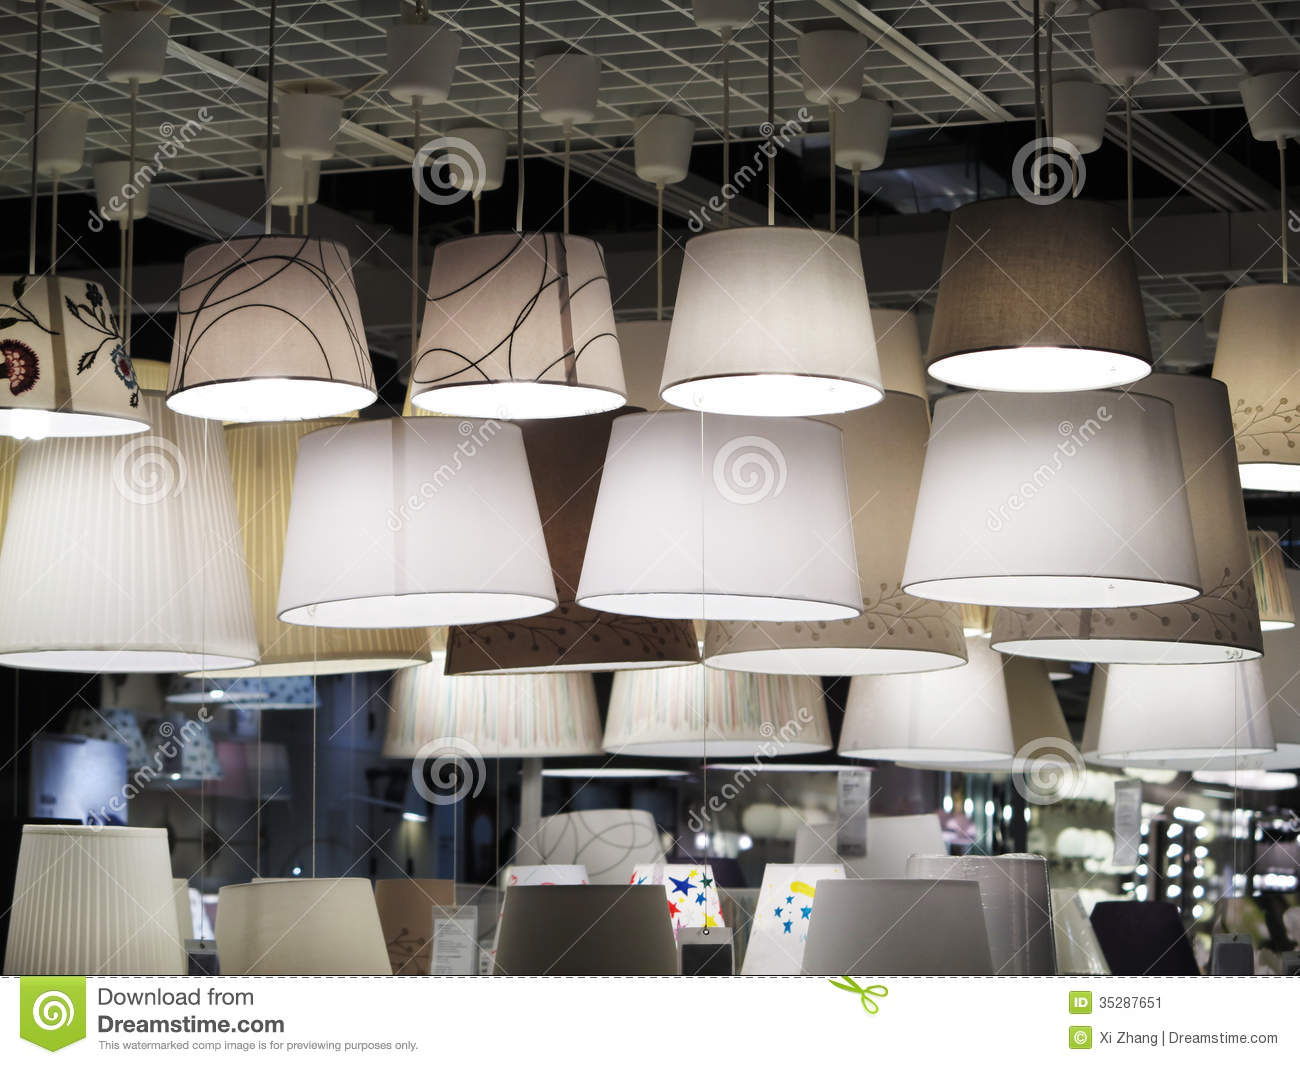 Lighting Store Stock Image Image Of House Light Shopping 35287651